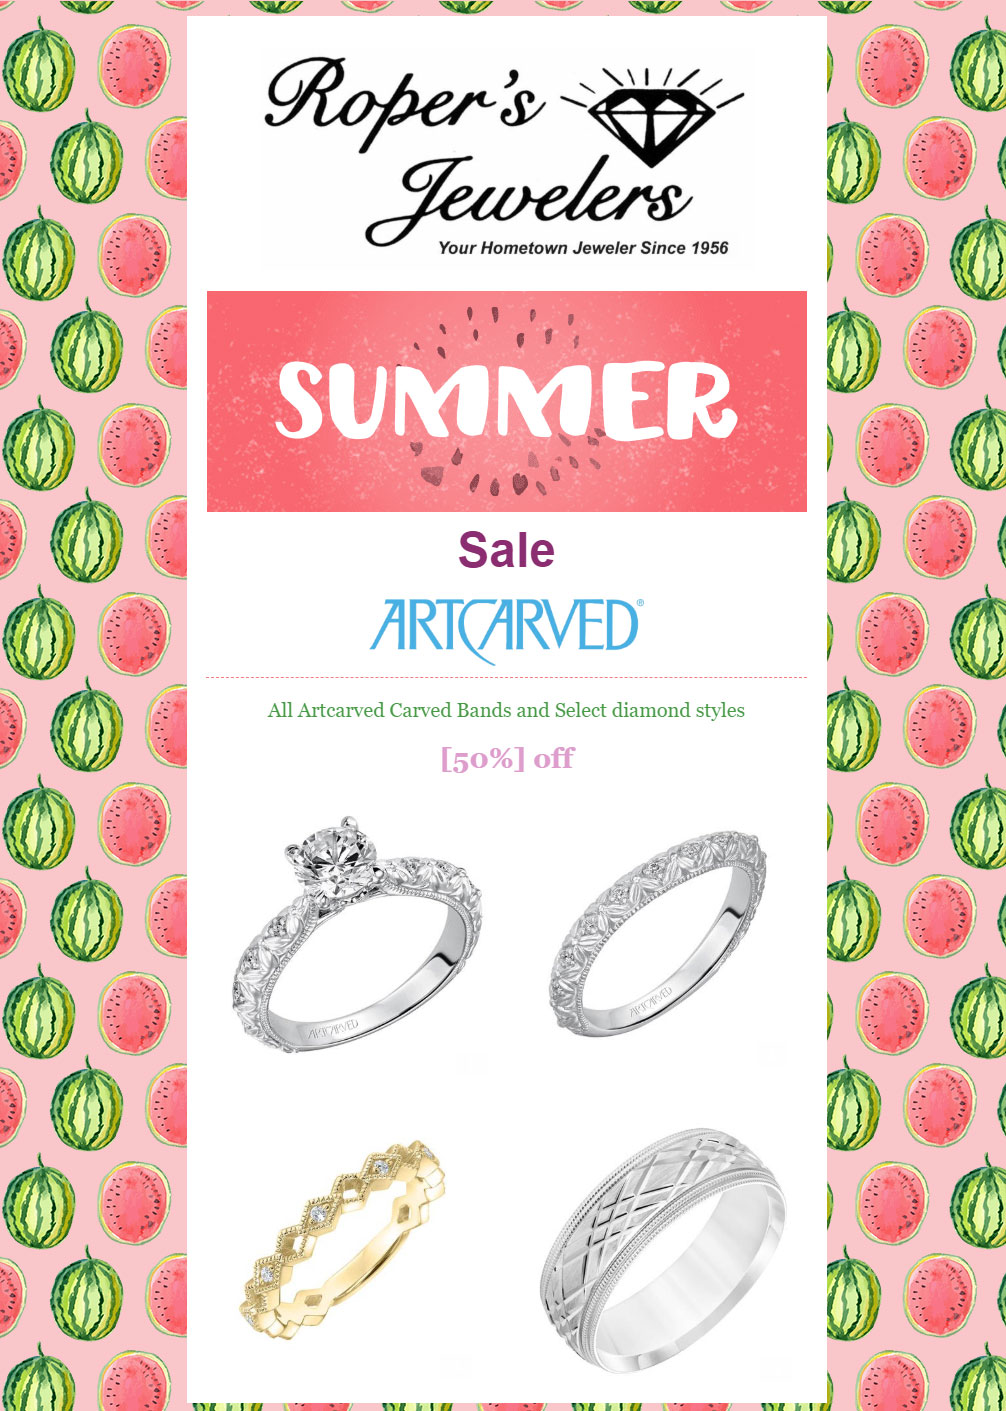 Ropers Jewelers 50% Off Summer Sale